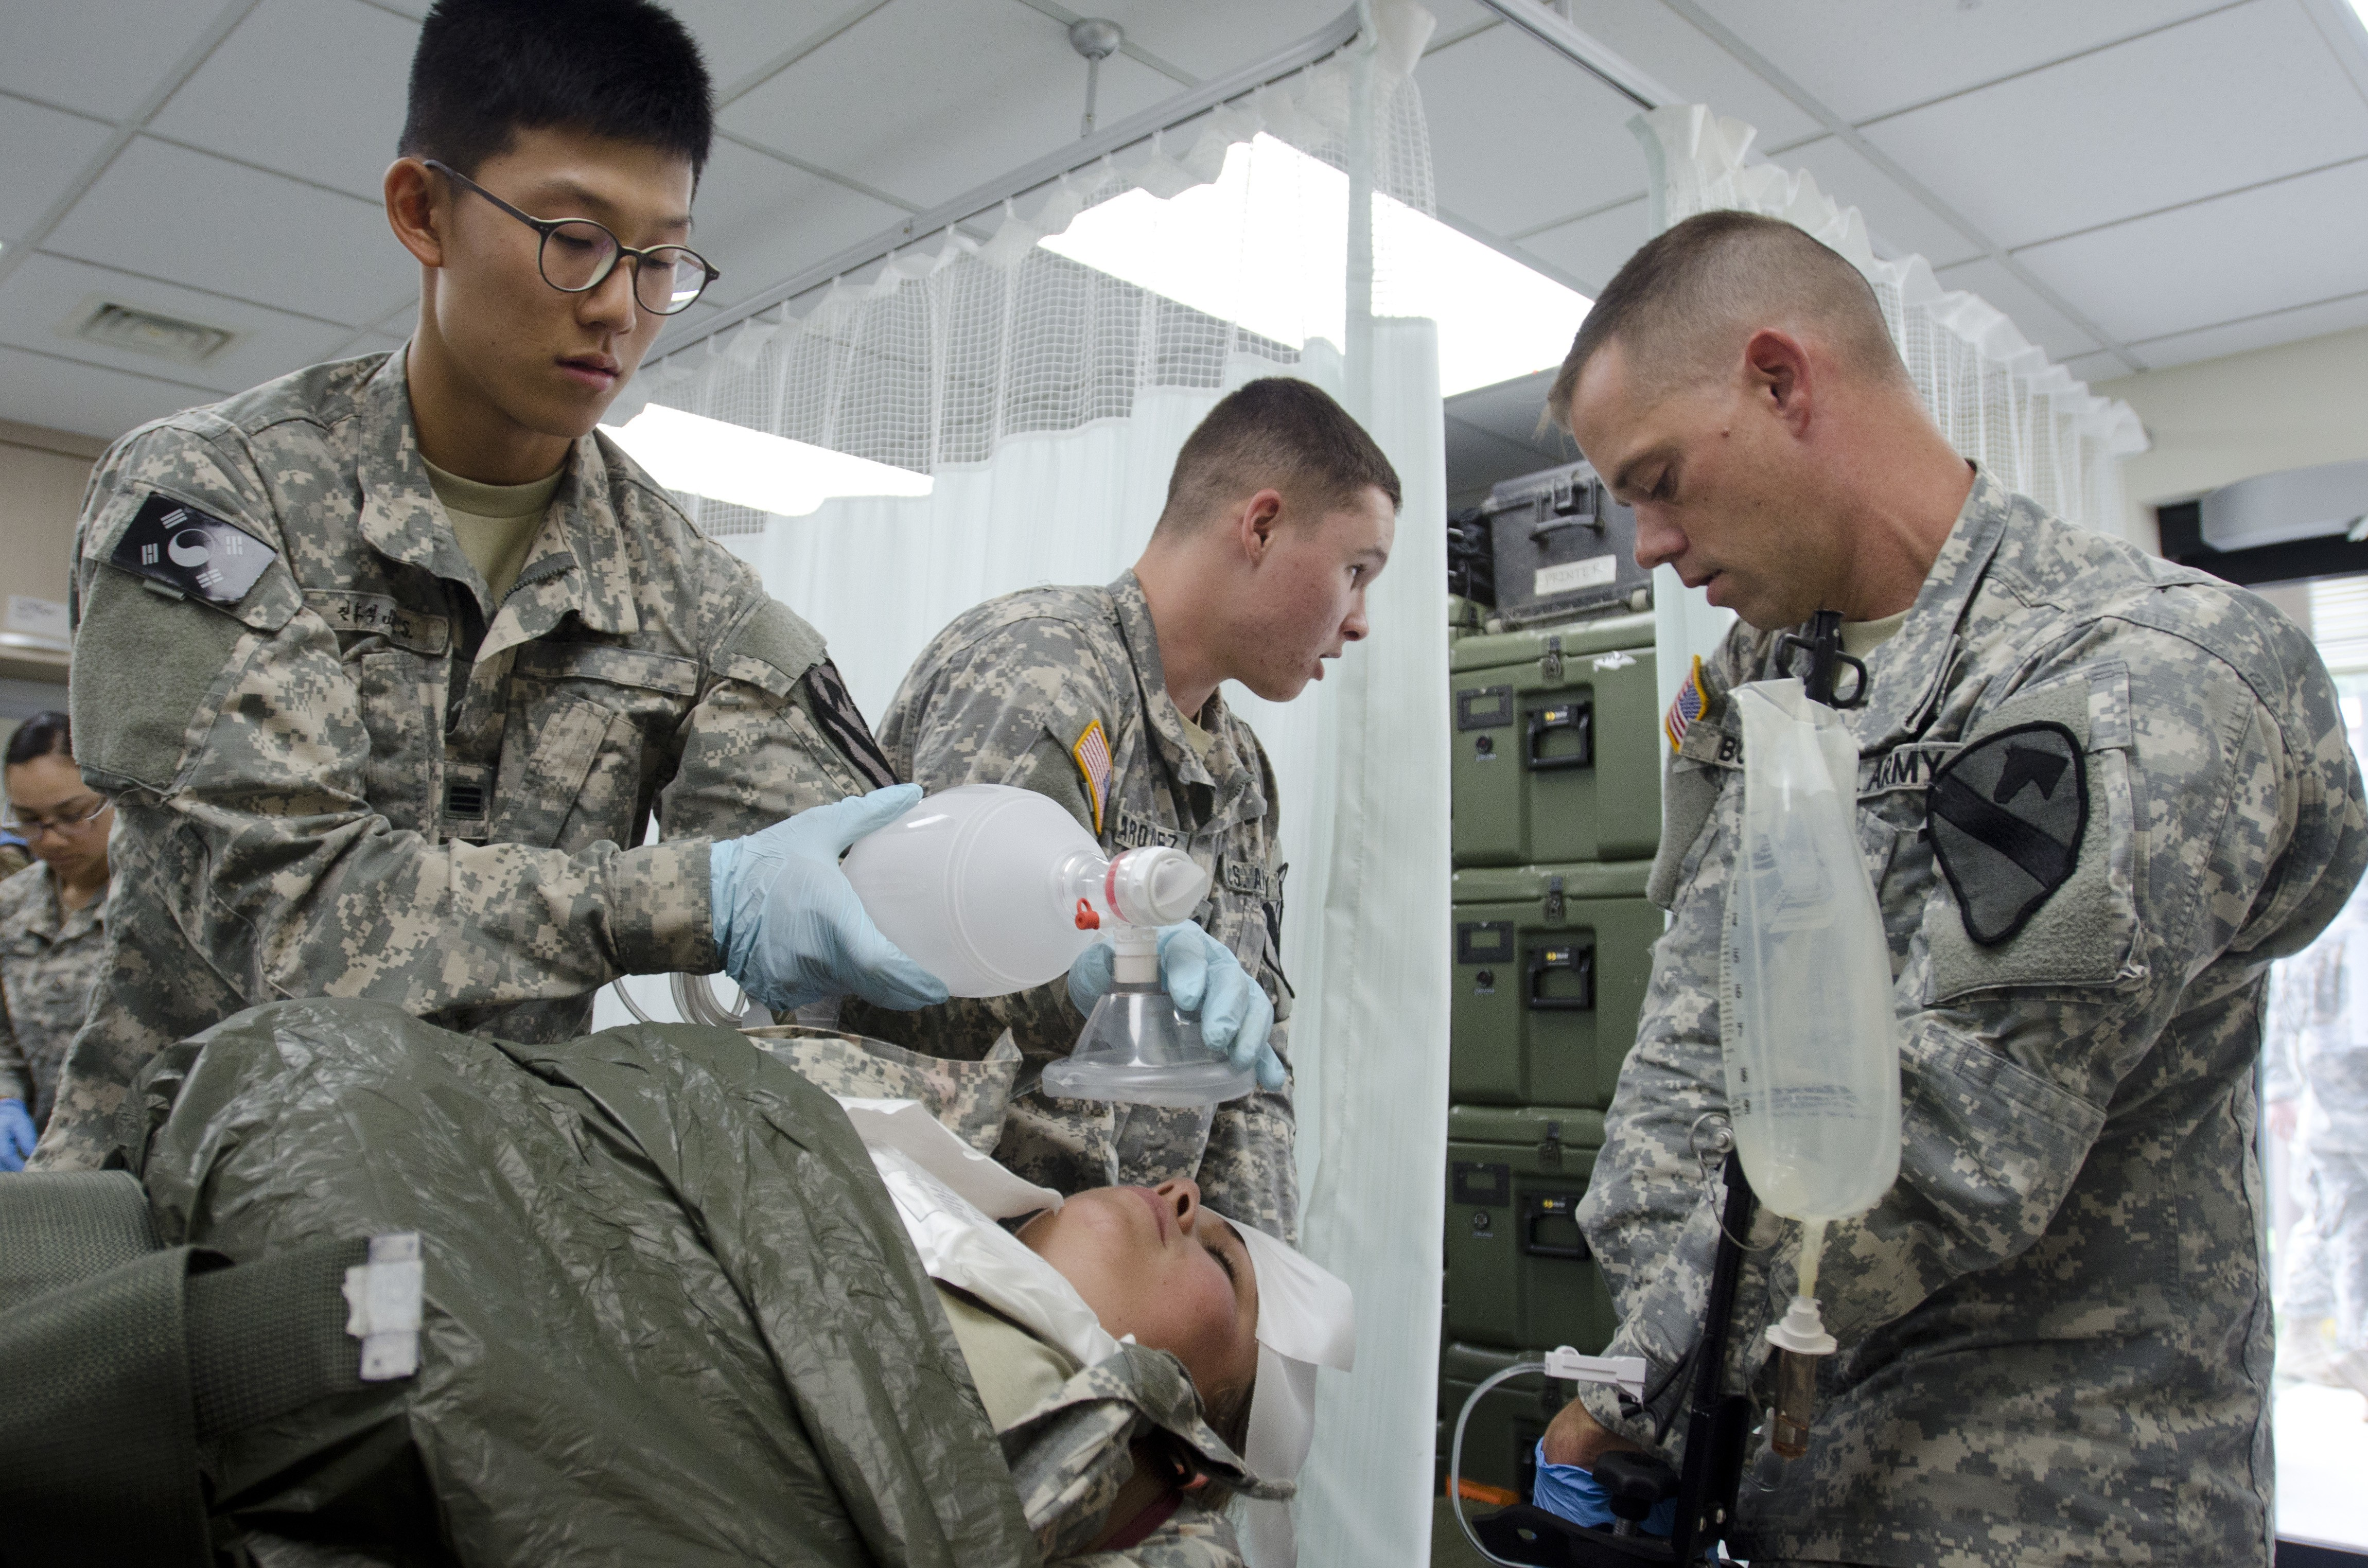 Combat medics train as they fight | Article | The United States Army